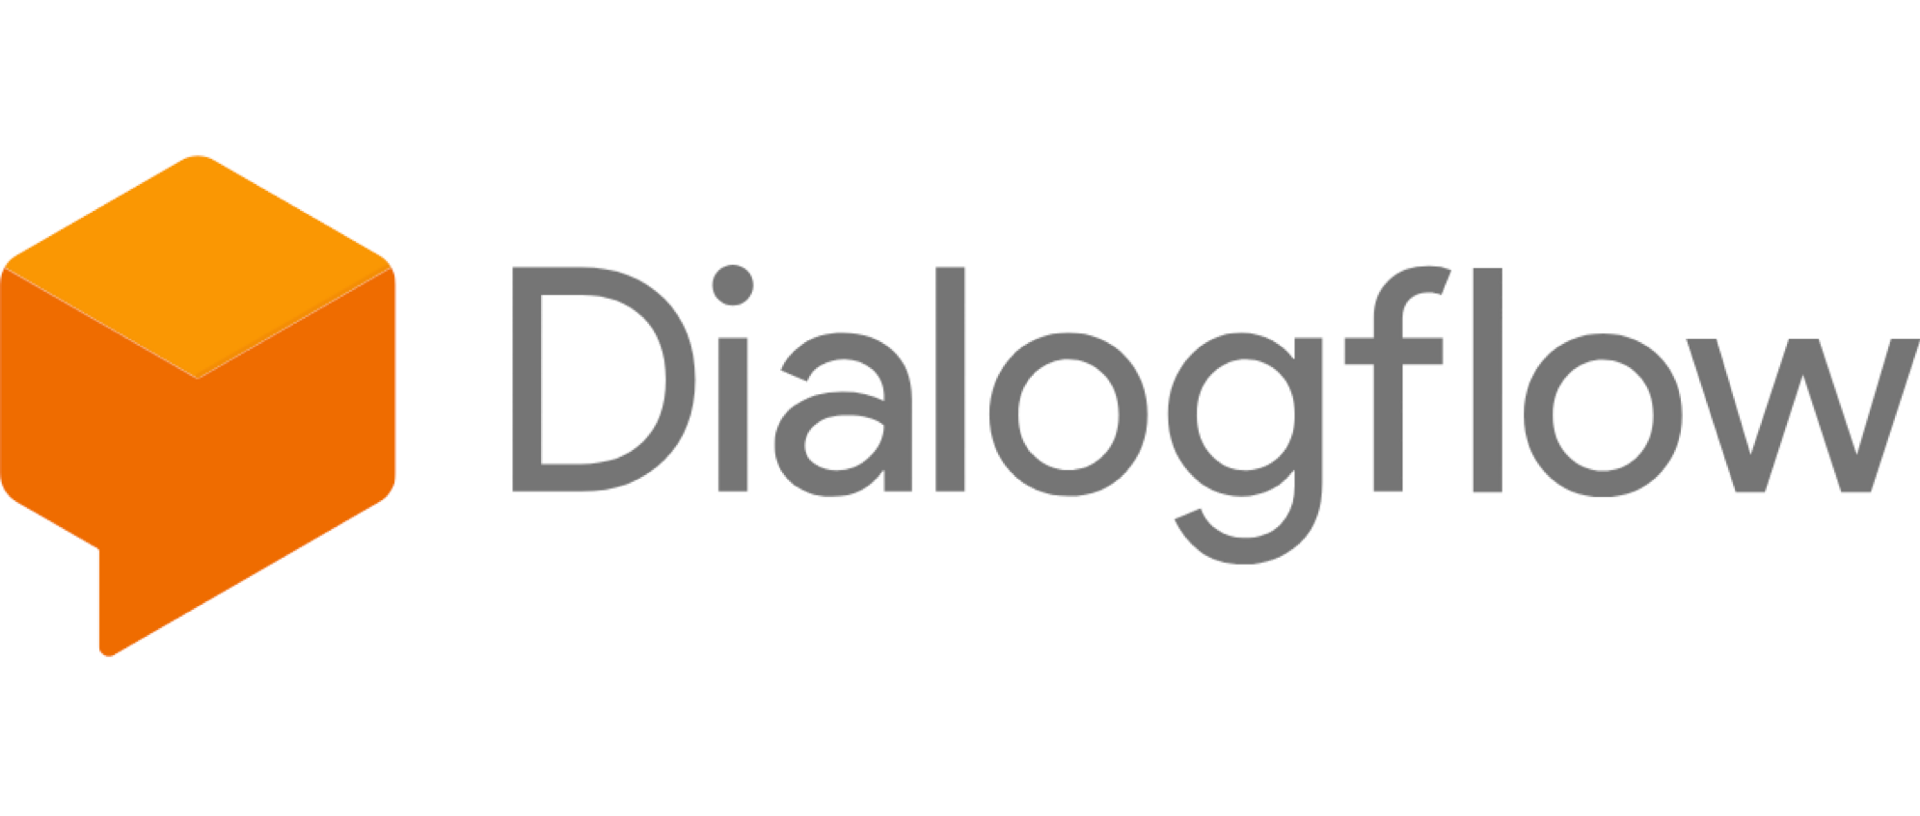 Create Your Own Chatbot Using Google Dialogflow - DZone AI